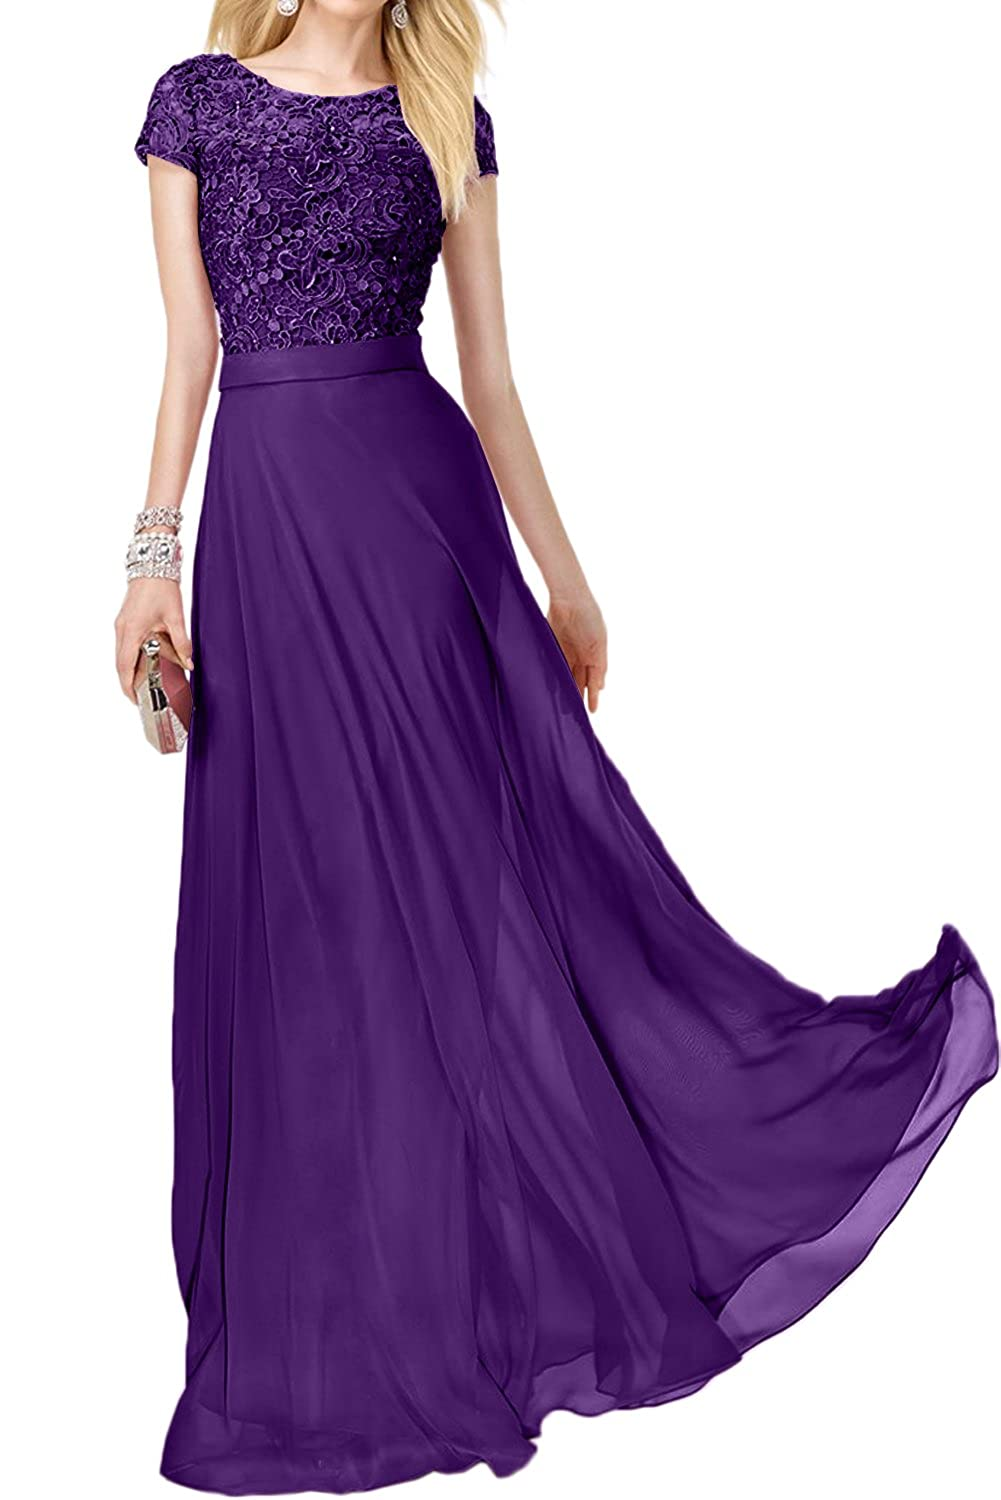 DressyMe Womens A-Line Short Sleeves Bridemaid Dress Maxi Party Gown Round-Neck